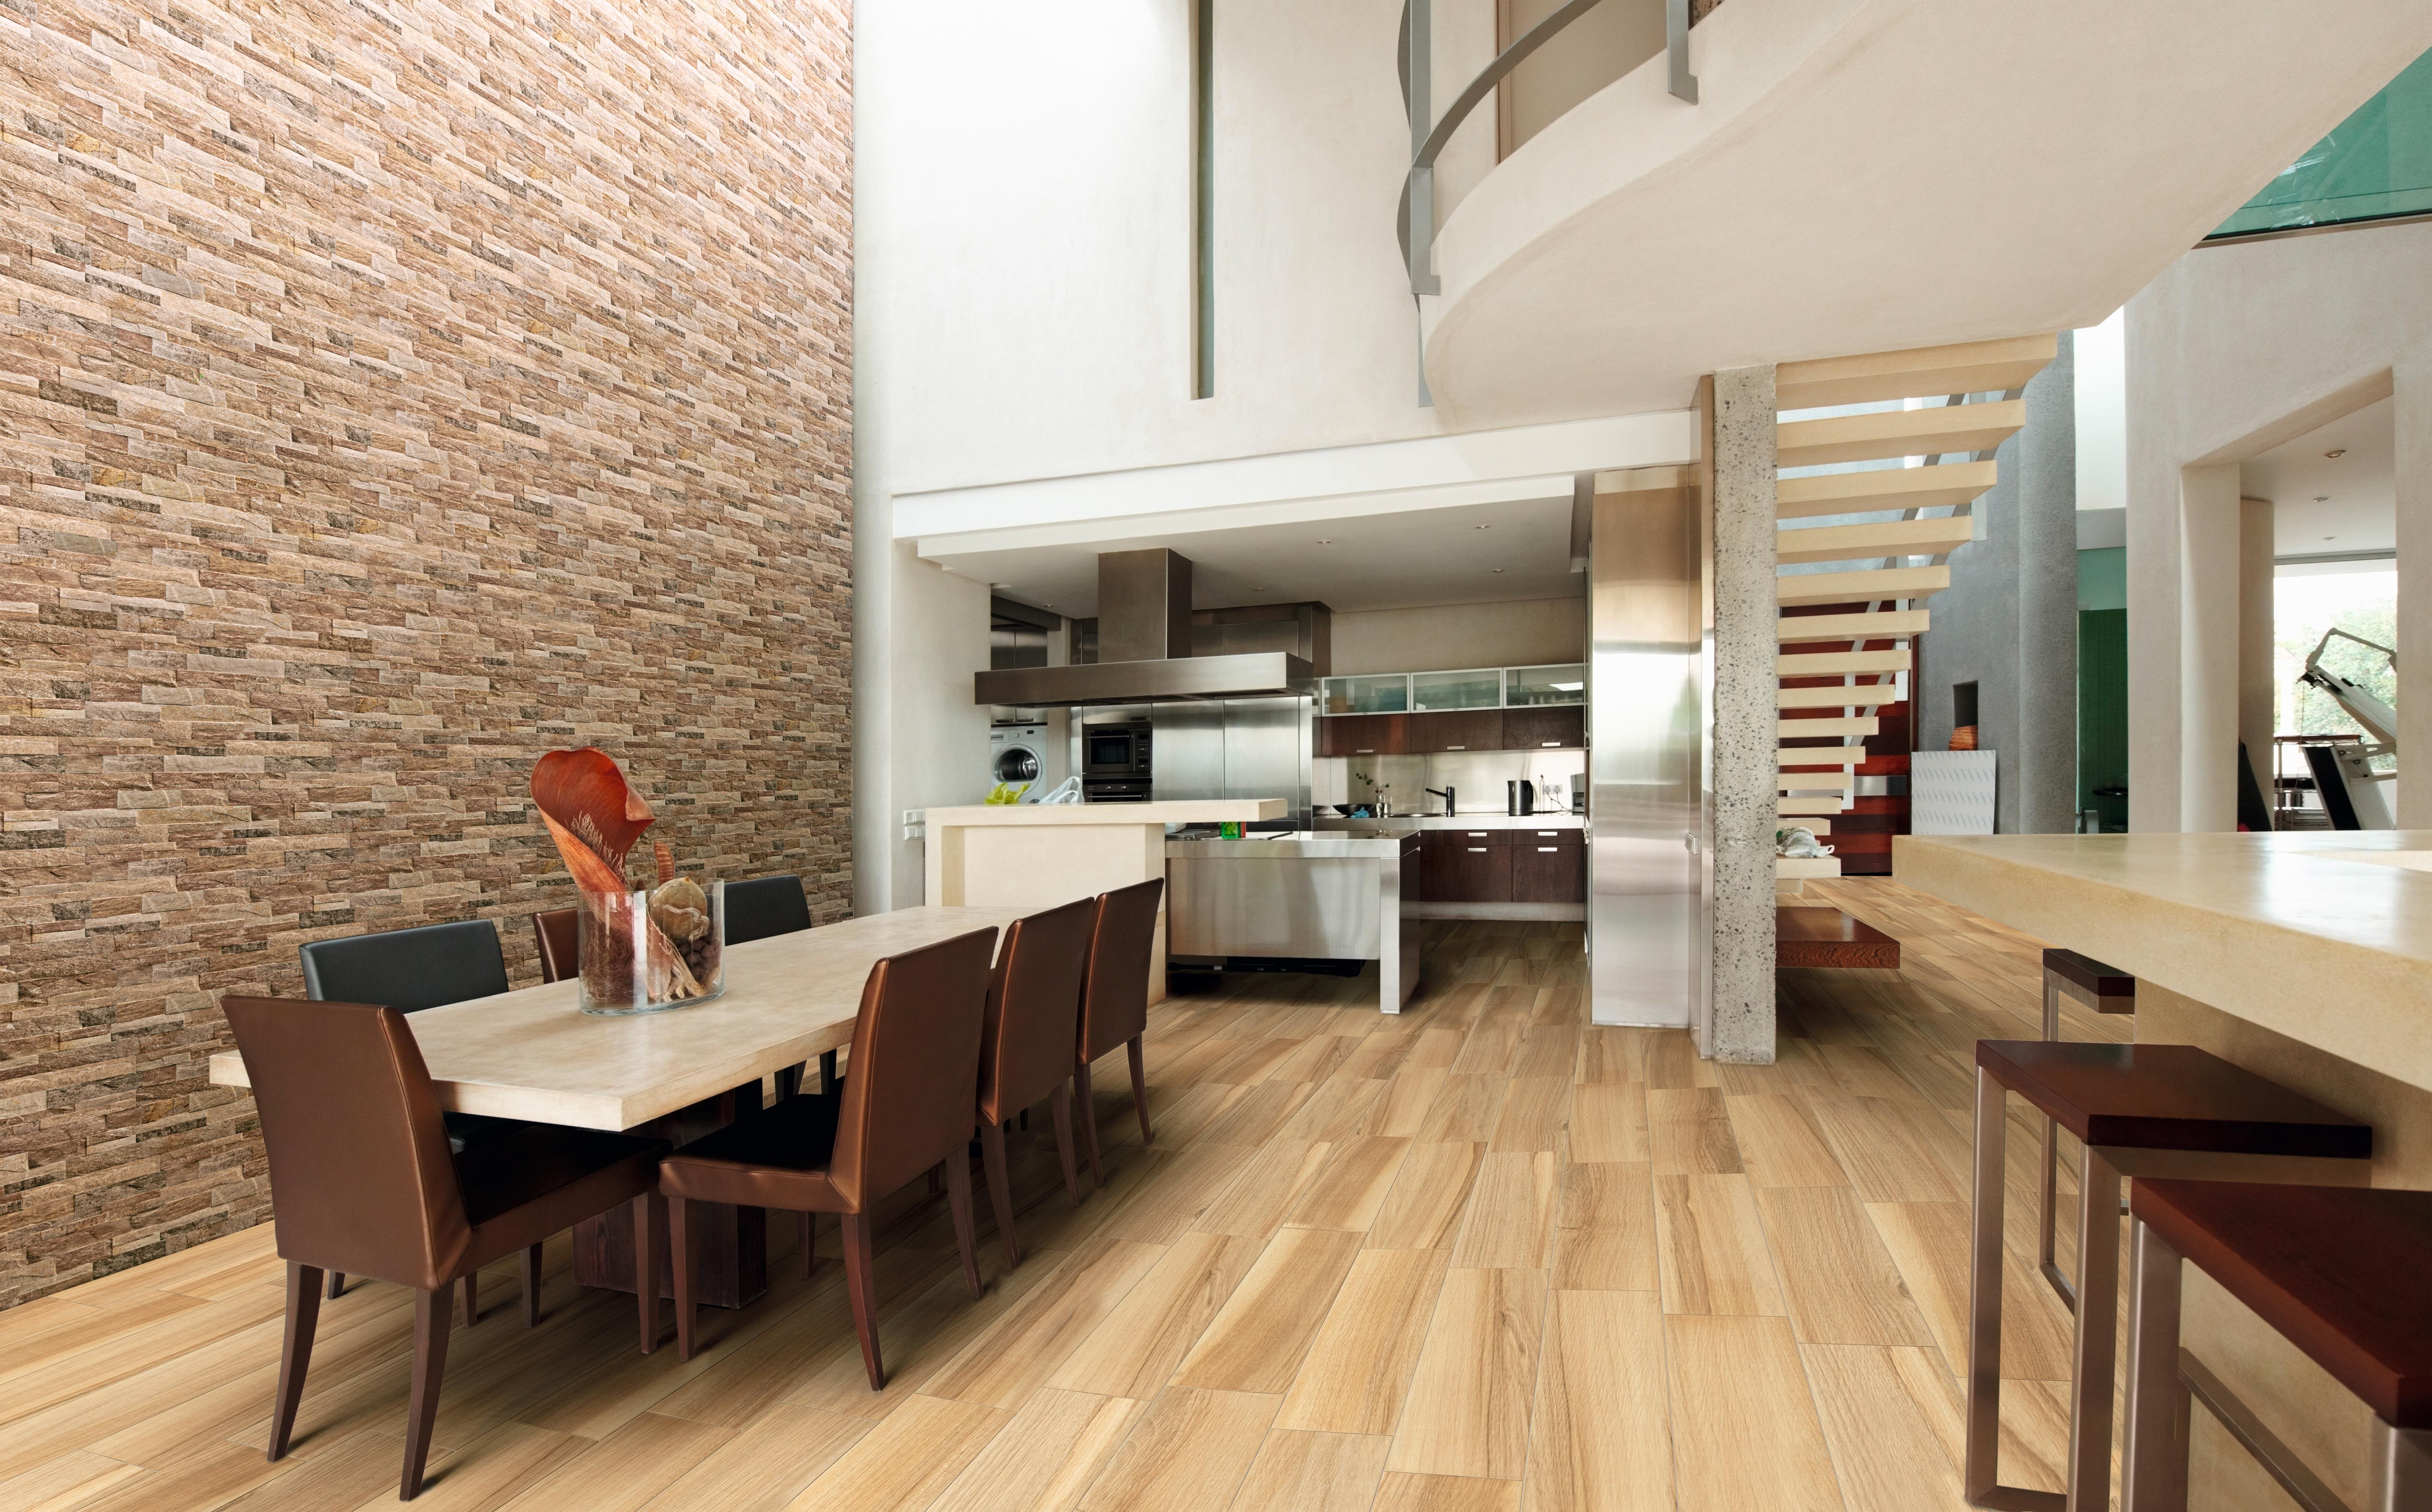 Kitchen tiles up to 70 off over 200 ranges natural wood effect kitchen tiles up to 70 off over 200 ranges natural wood effect ceramic flooringflooring dailygadgetfo Images